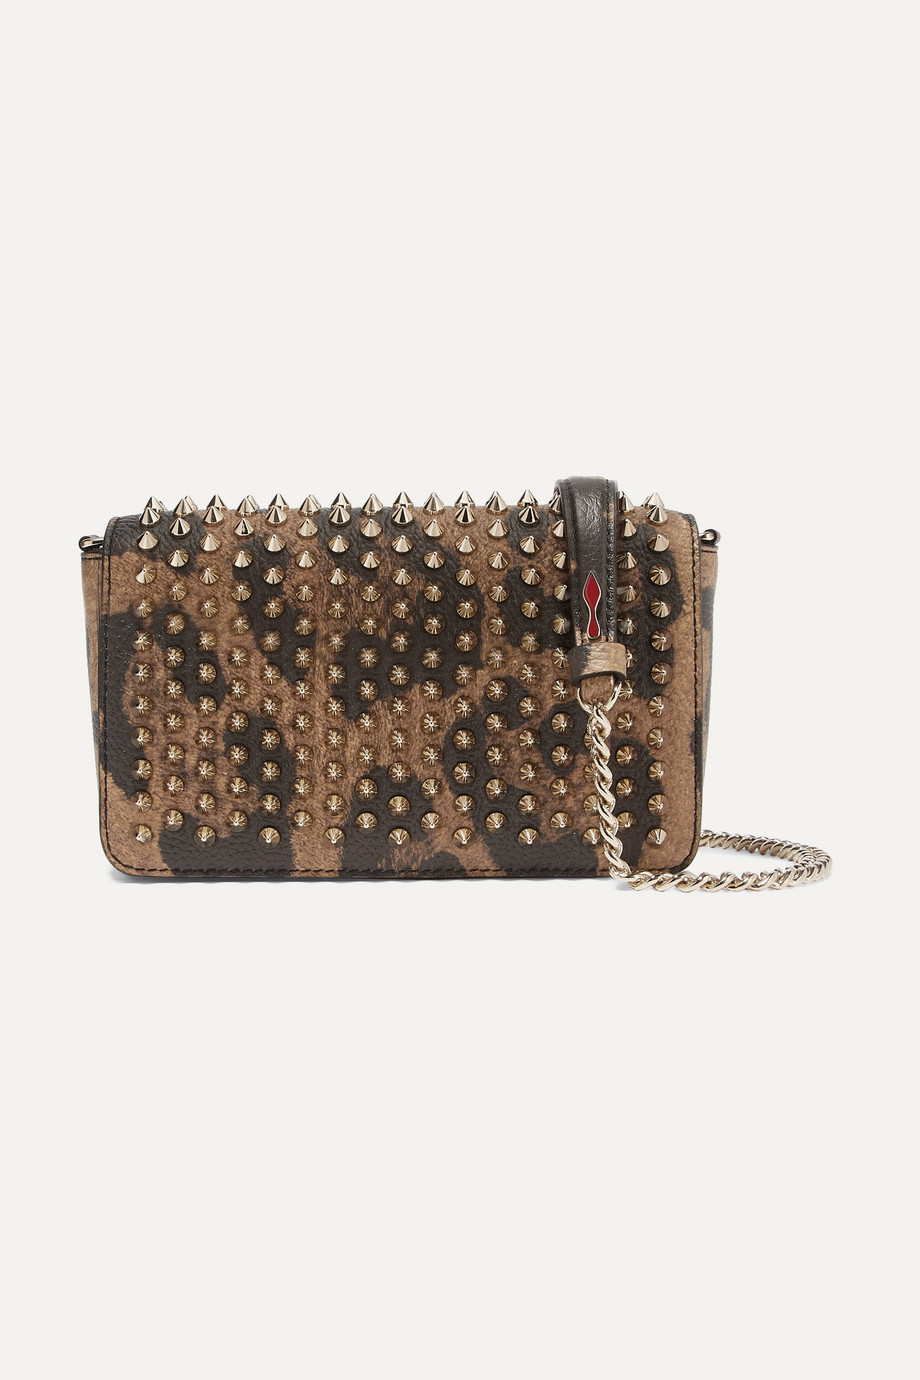 Christian Louboutin Zoompouch spiked leopard-print leather shoulder bag